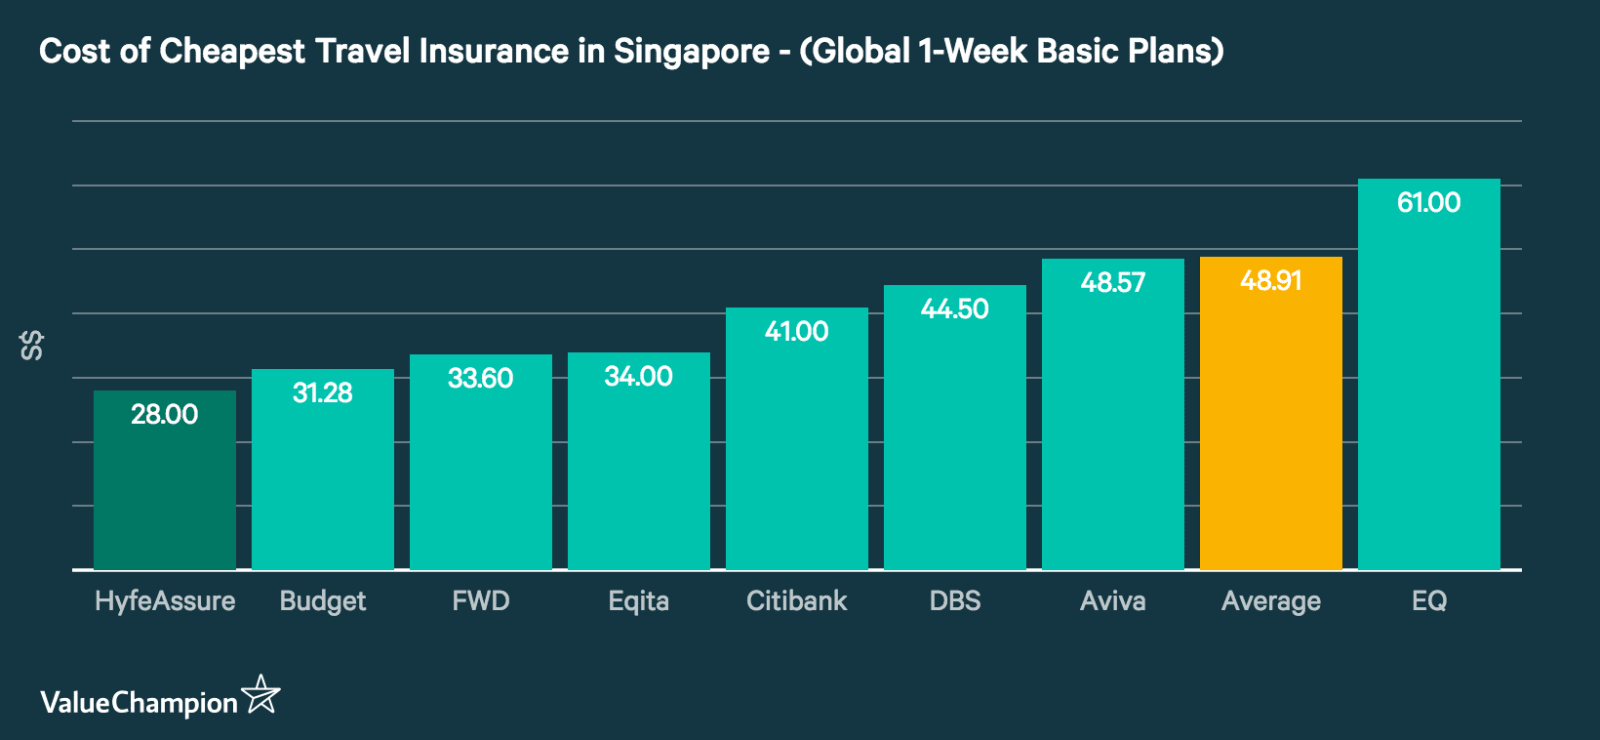 Cost of cheapest travel insurance plans in Singapore sorted by basic global one-week plans